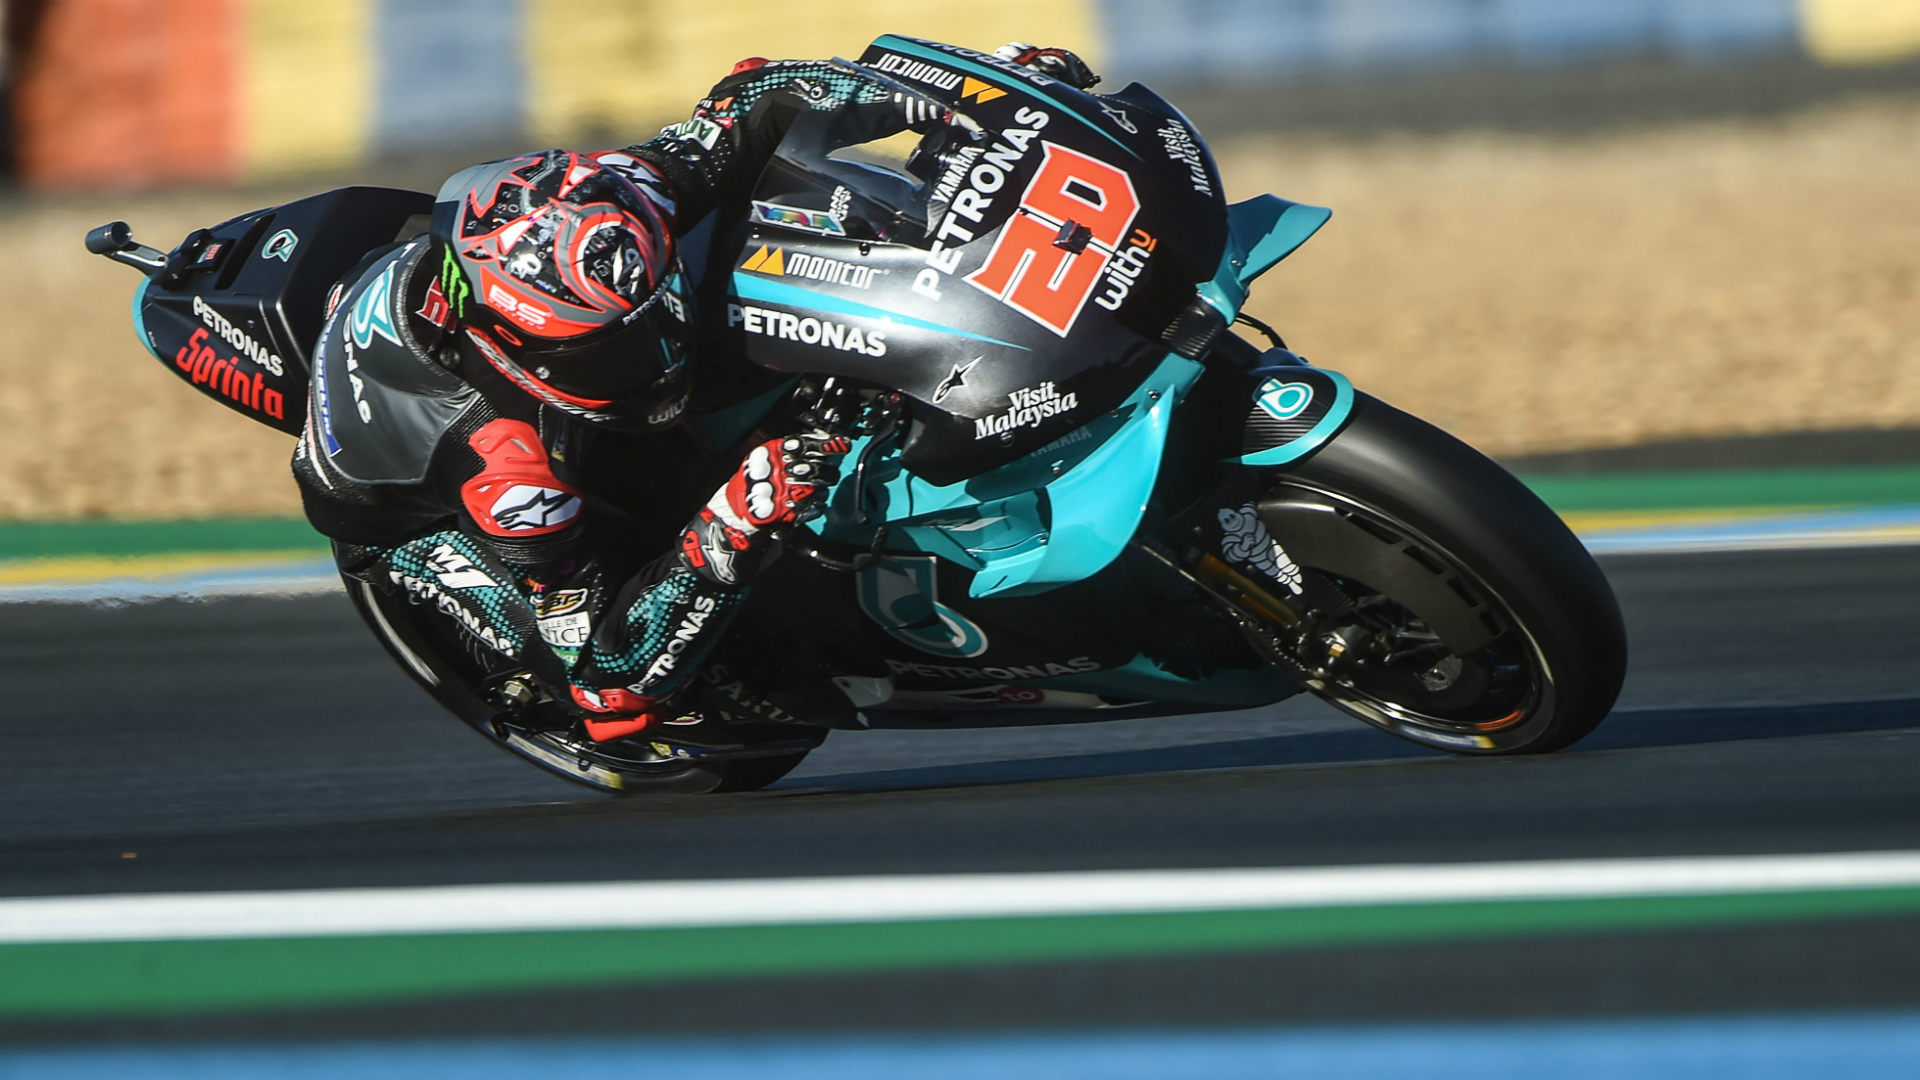 MotoGP 2020: Quartararo storms to home pole at Le Mans as Mir struggles